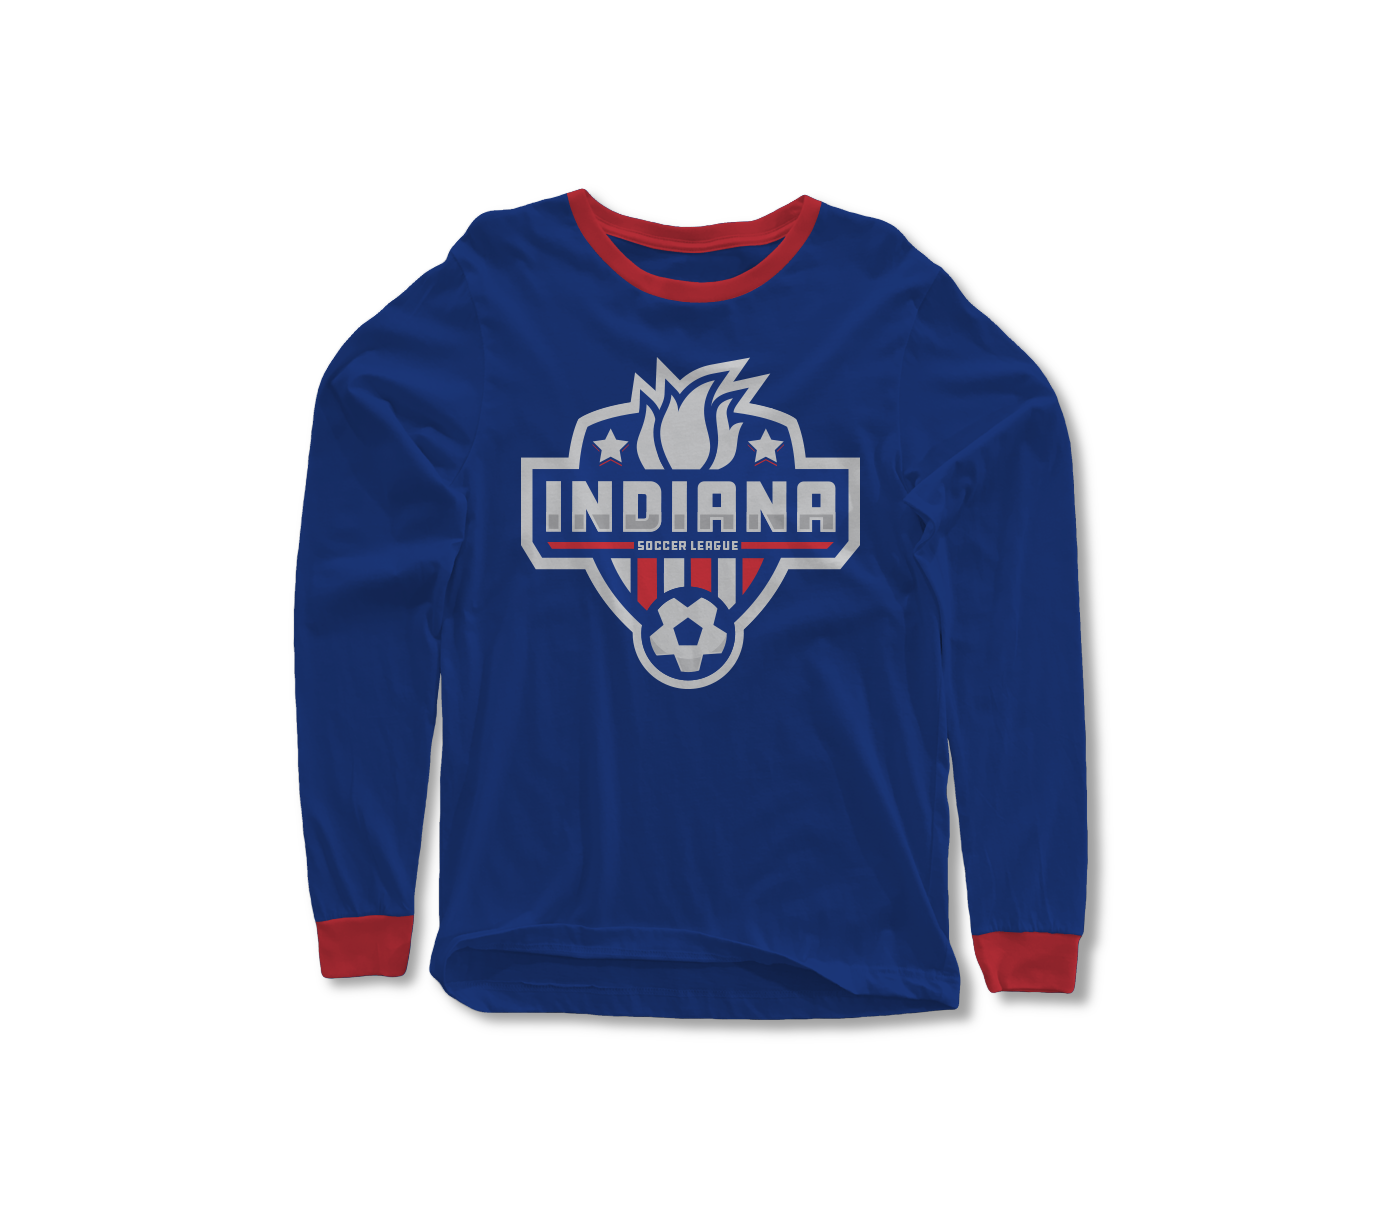 Indiana Soccer League Shirt Mockup